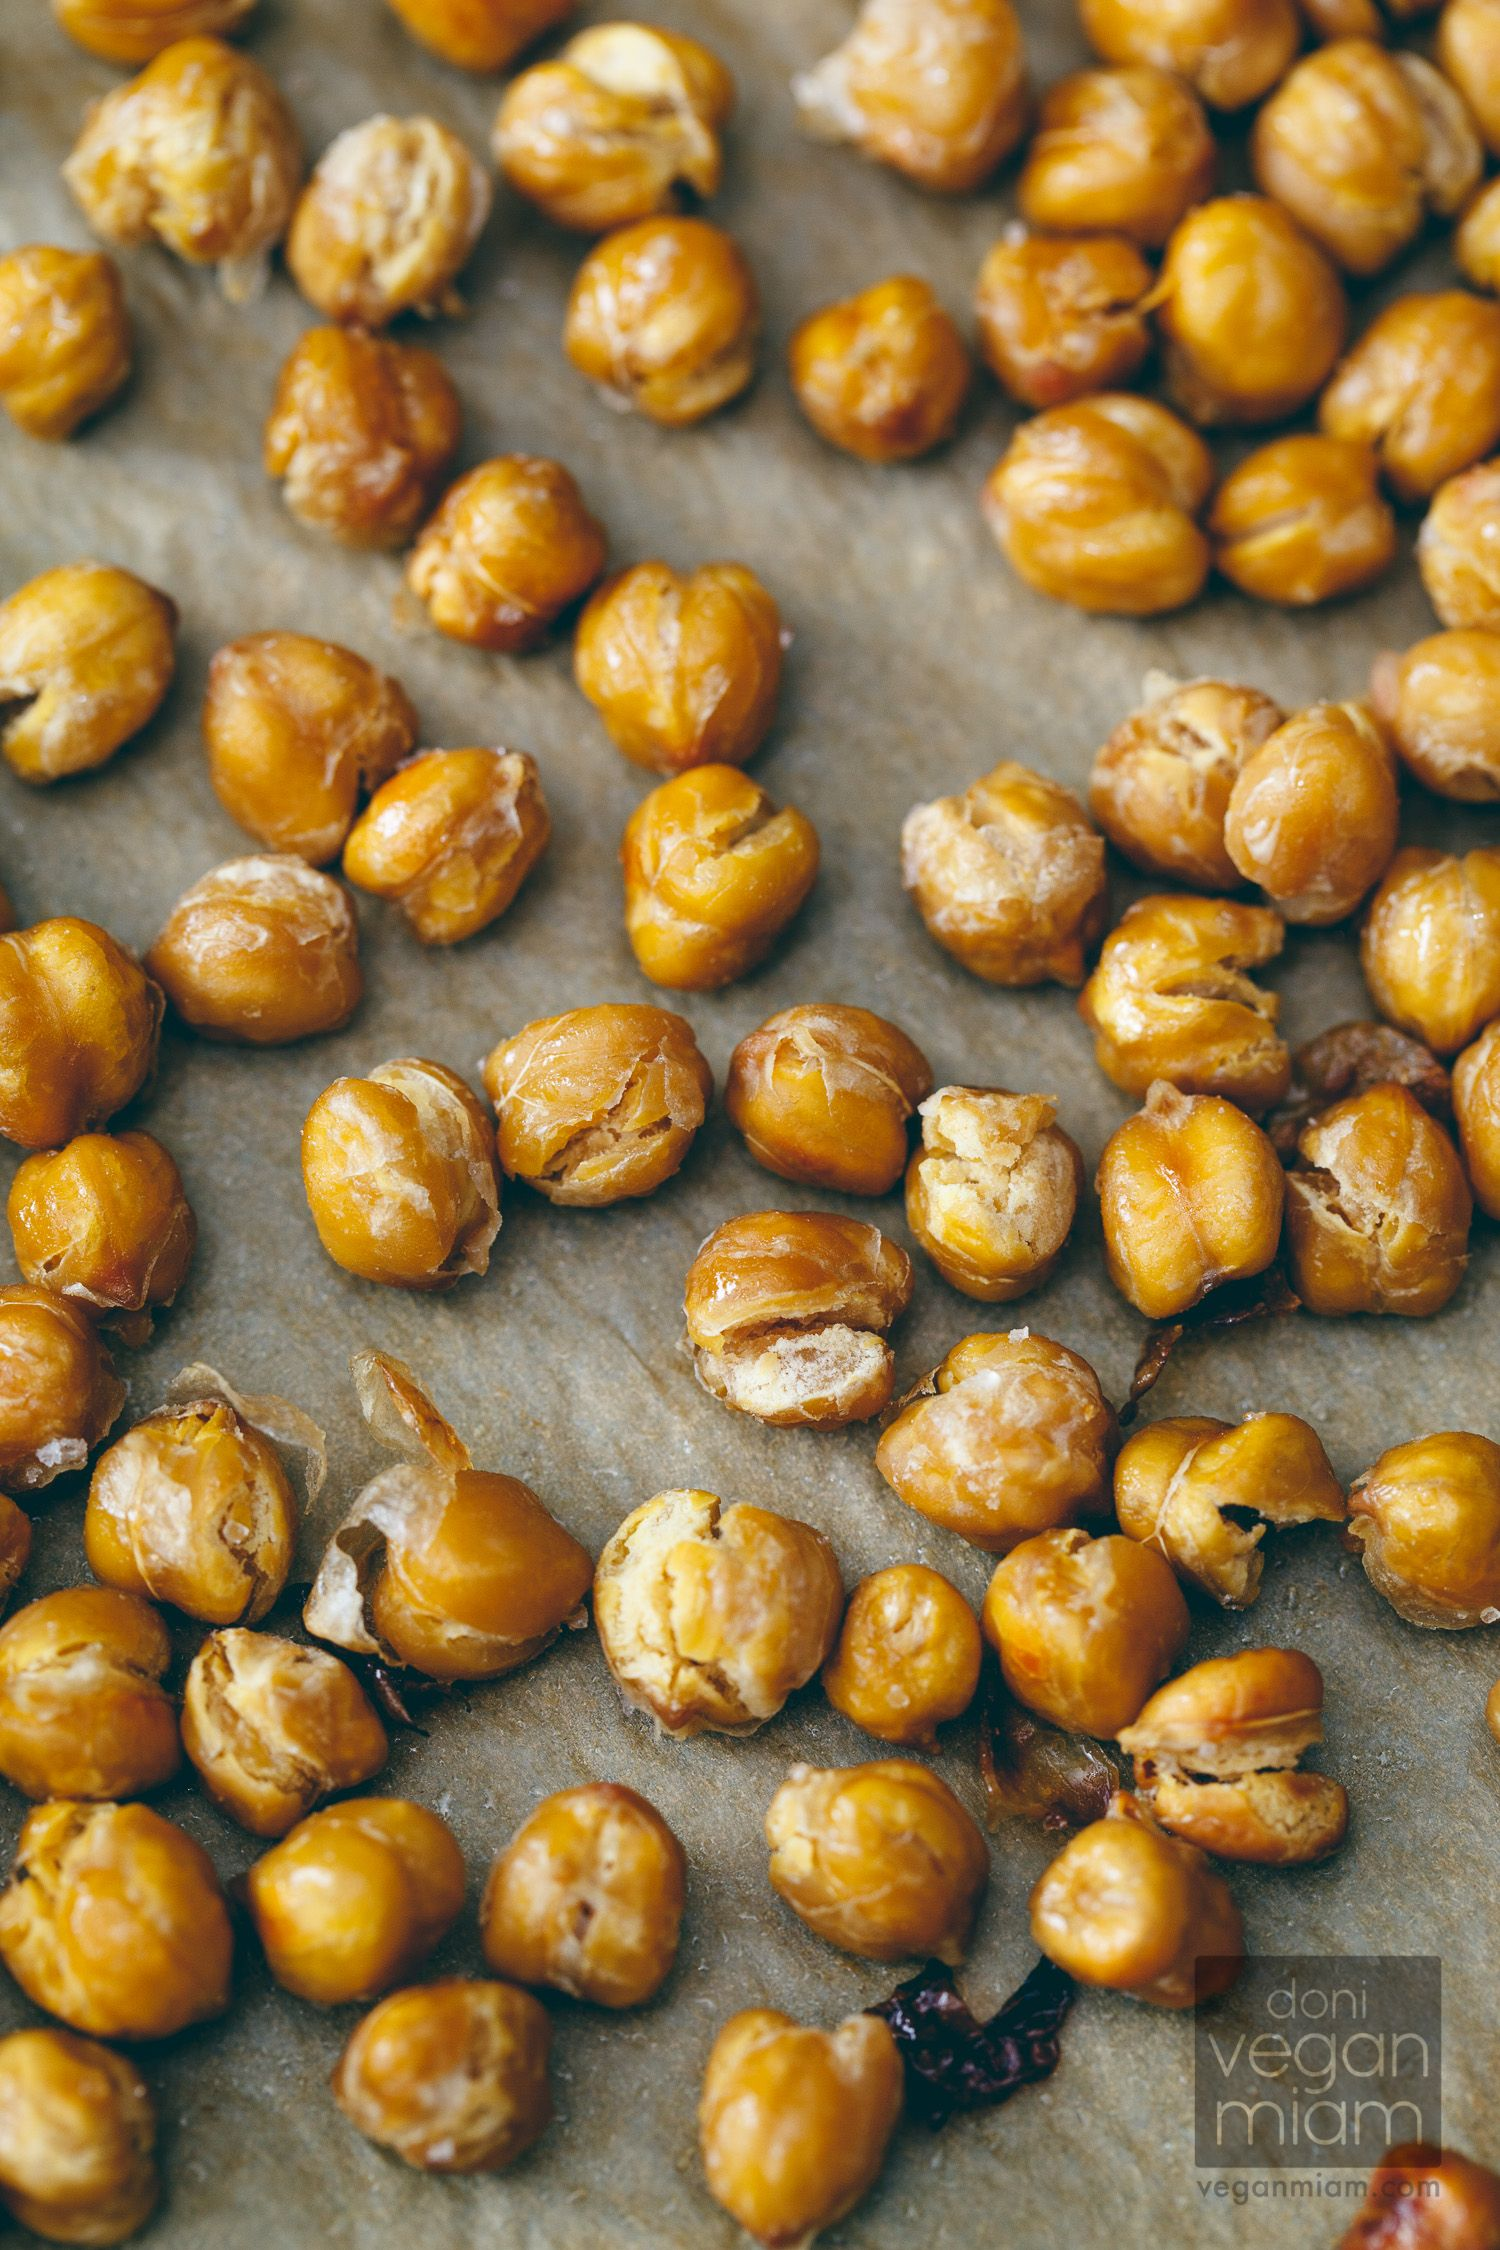 "#Vegan Salt & Vinegar Roasted Chickpeas from ""The @Angela Gray Gray Gray Gray Liddon Cookbook"" 